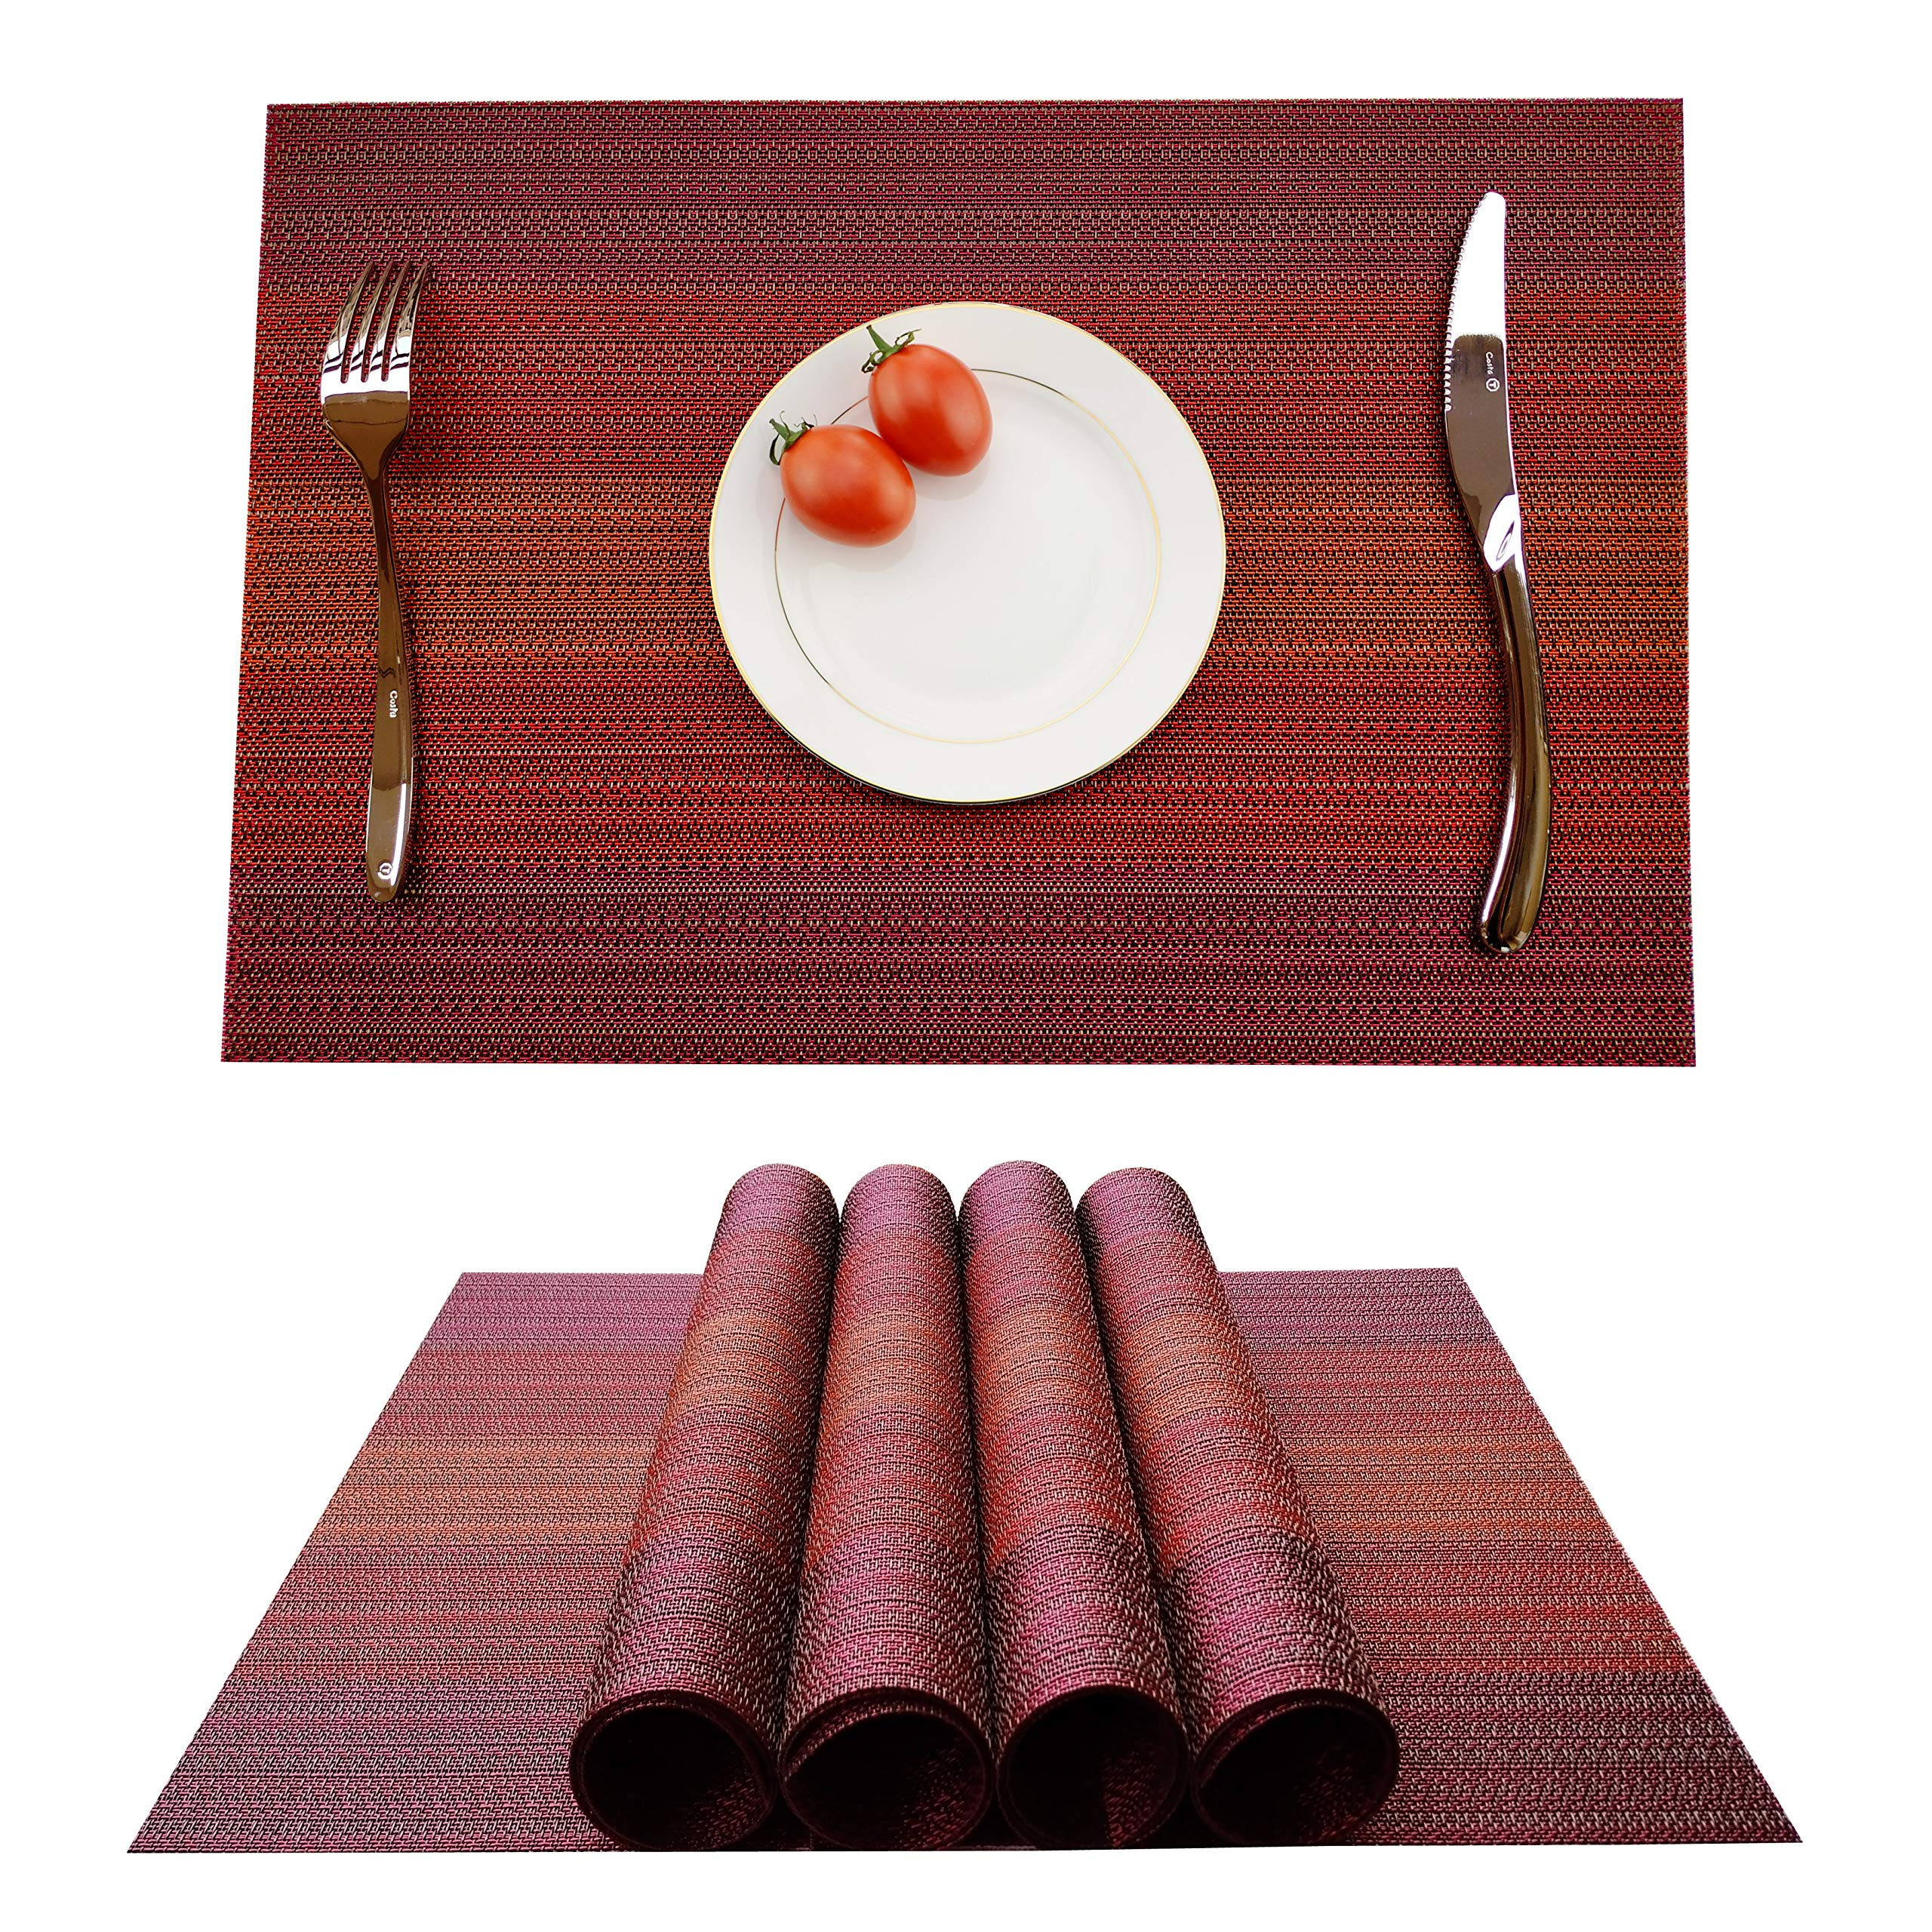 KOKAKO Placemats Heat-Resistant Dining Table Placemats Stain Resistant Anti-Skid Washable PVC Kitchen Table Mats Woven Vinyl Placemats,Set of 4 (Dark Red)